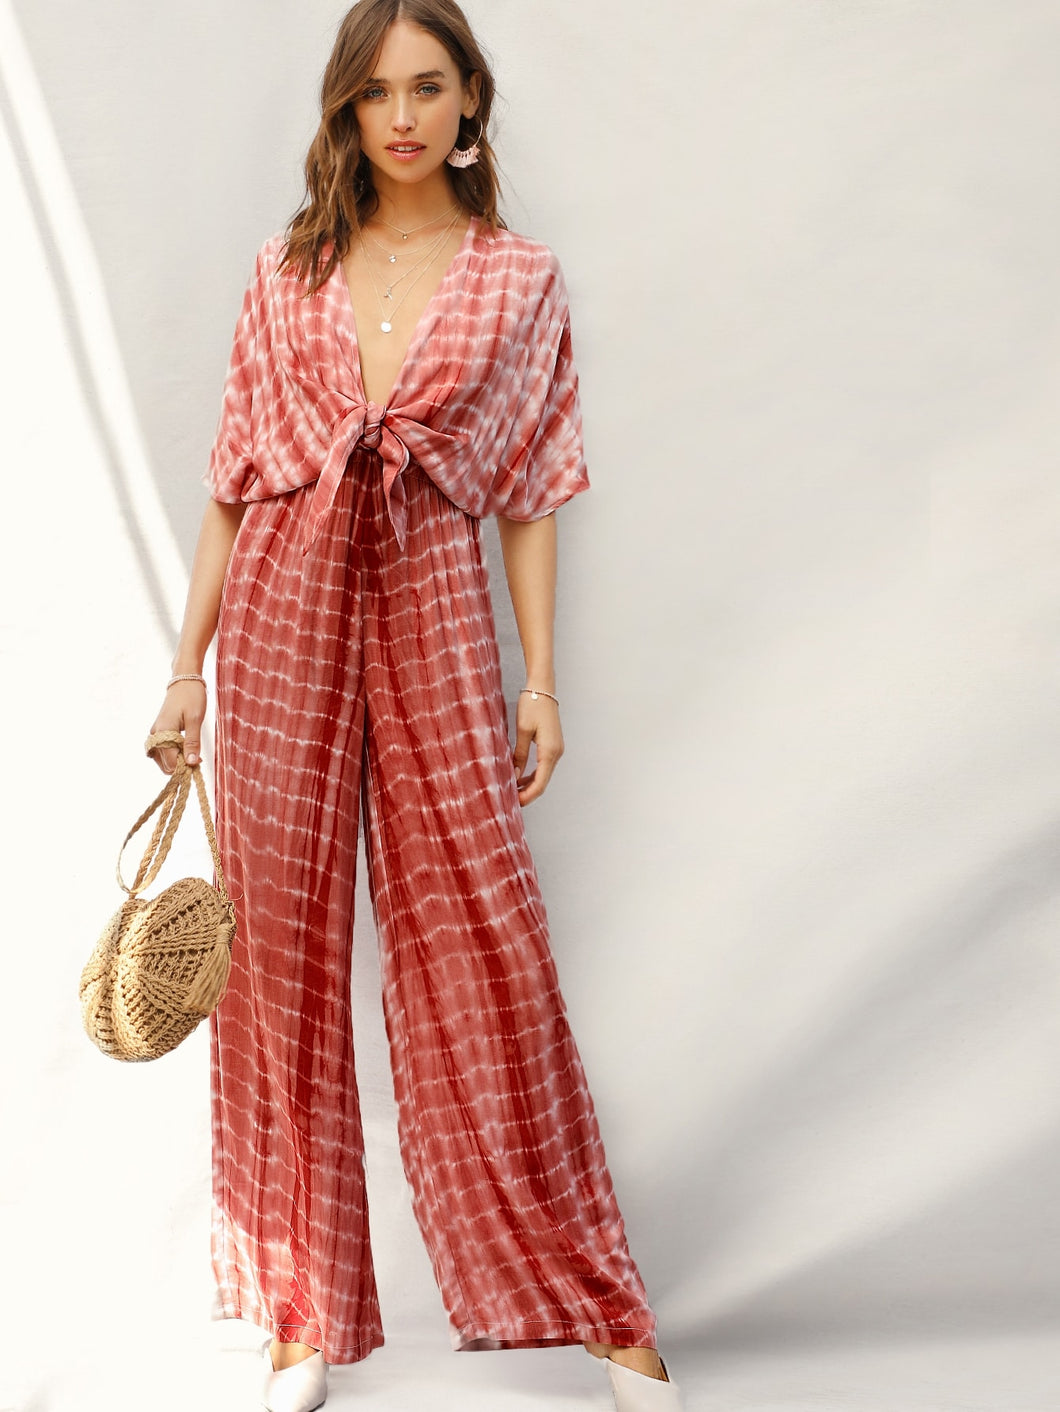 SHEIN Plunging Neck Knot Front Tie Dye Palazzo Jumpsuit